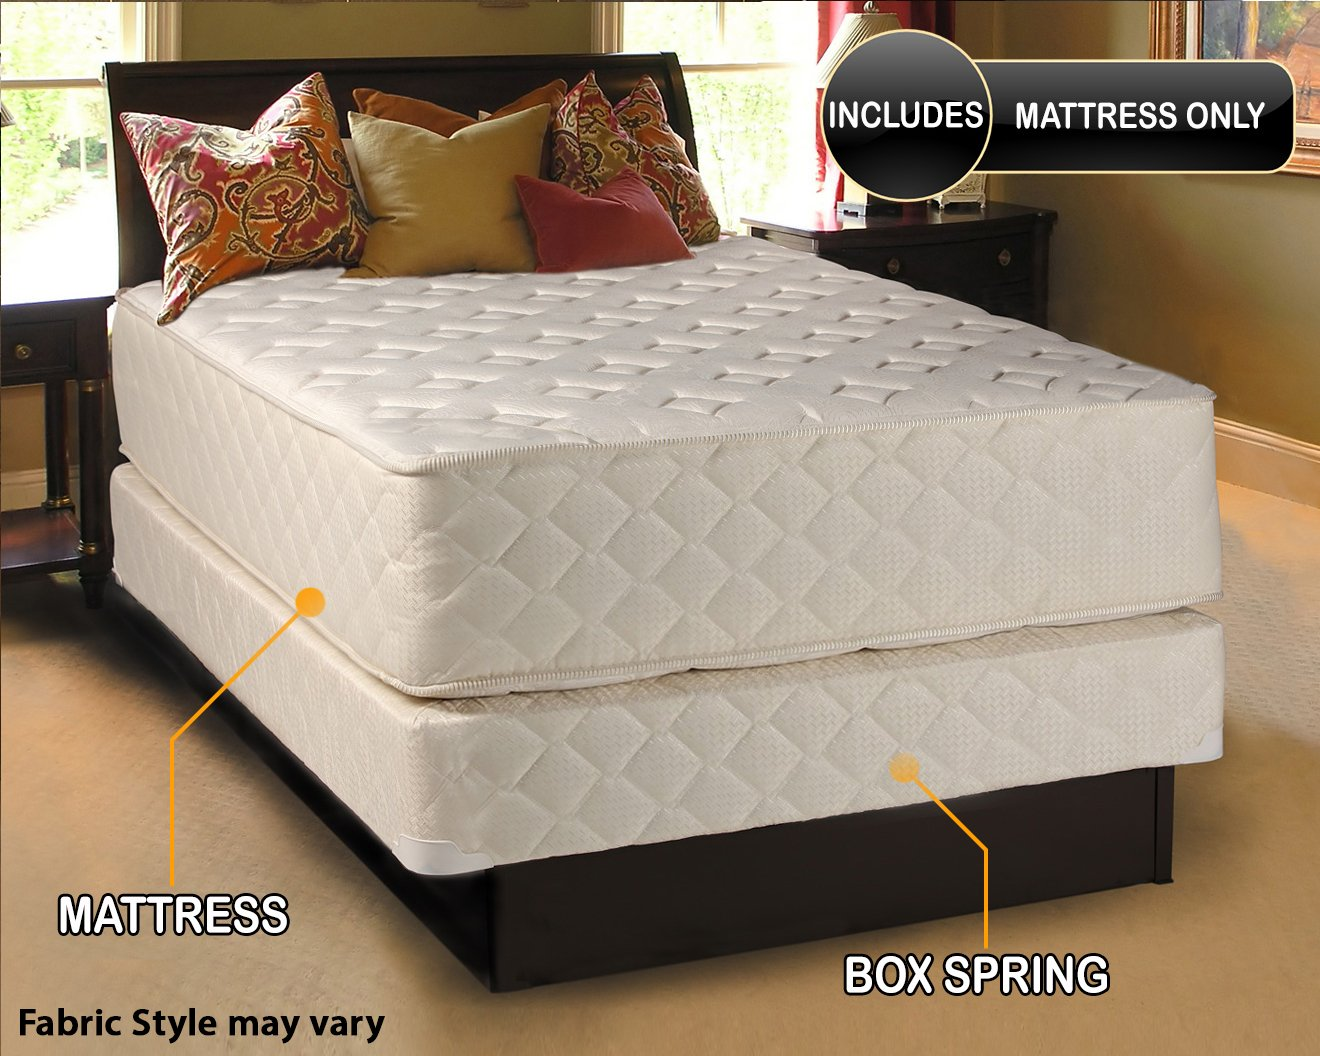 Dream Solutions USA Highlight Orthopedic Mattress Review by www.snoremagazine.com